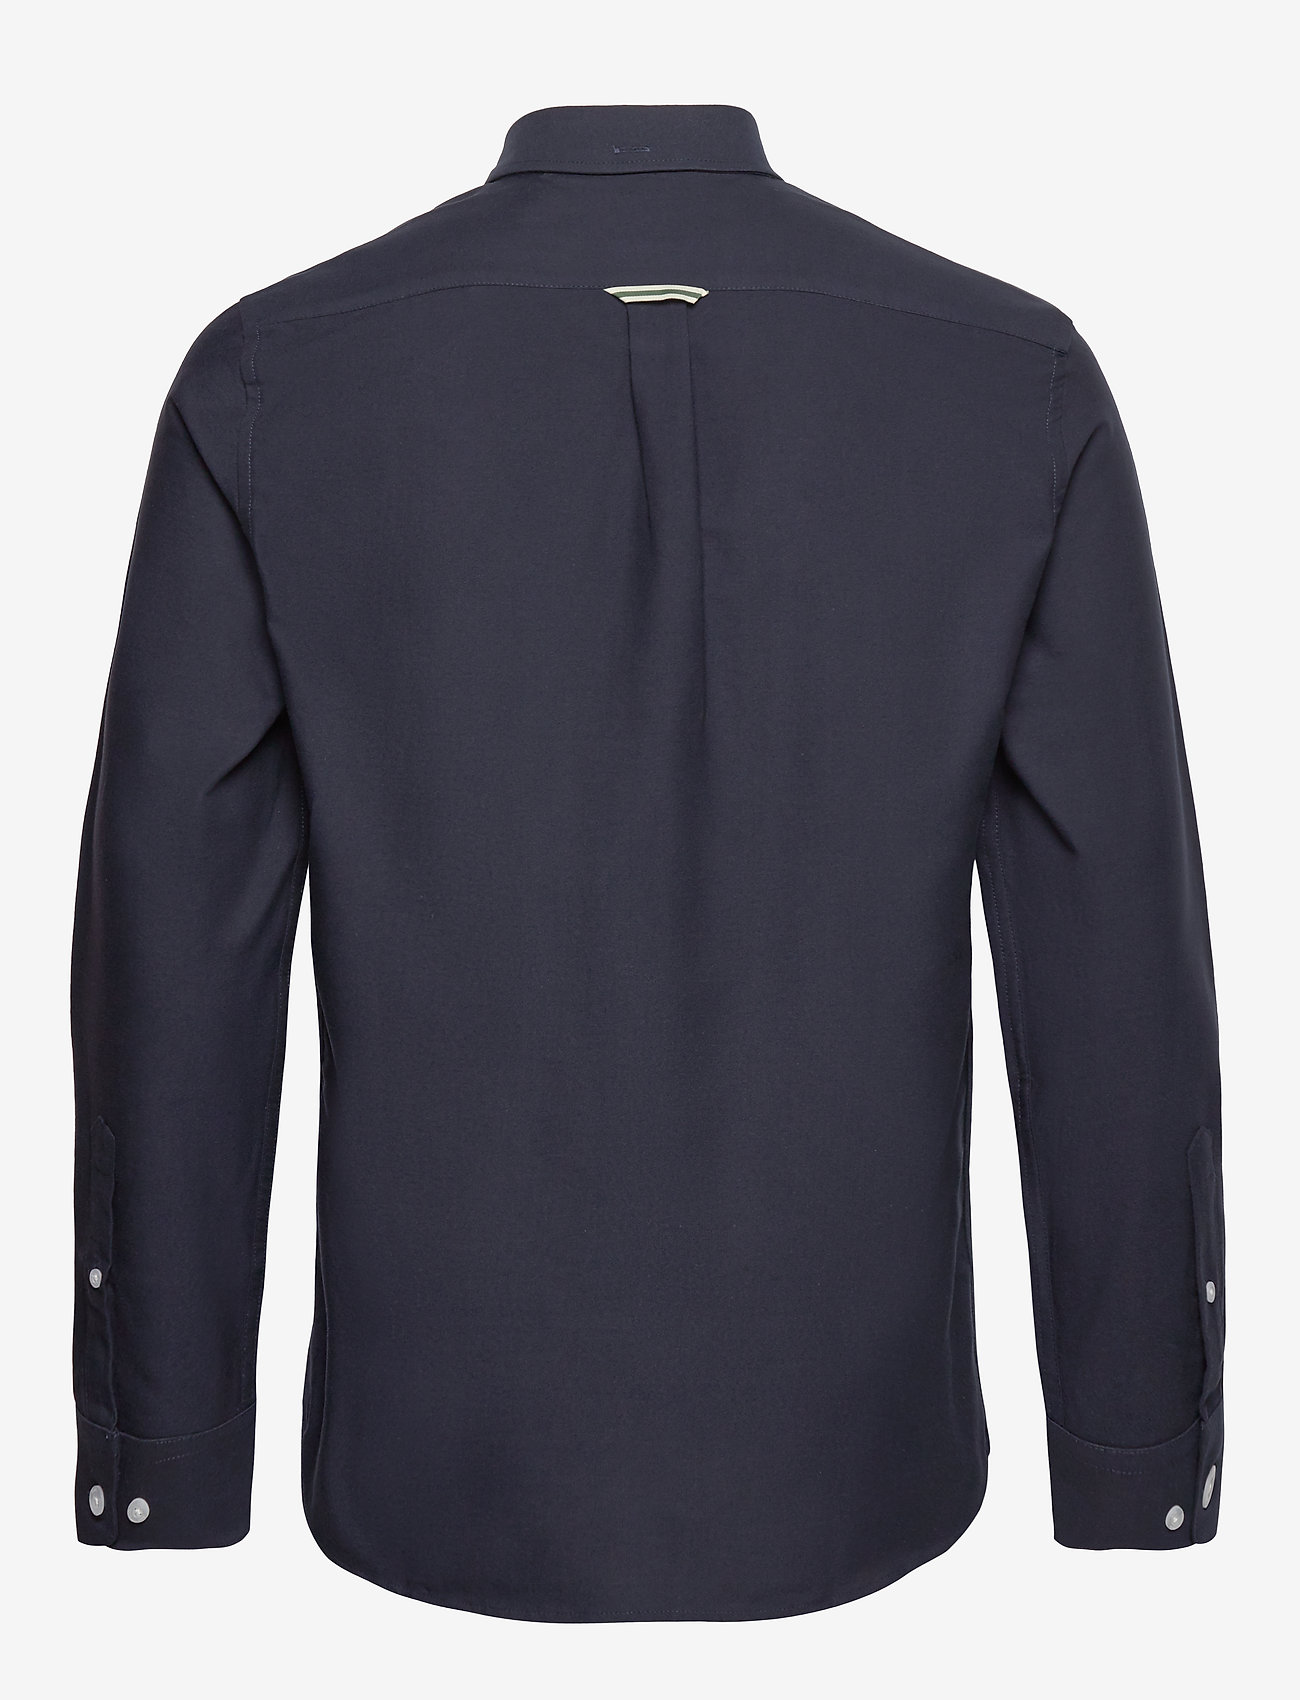 Forét FALCON SHIRT - Skjorter MIDNIGHT BLUE - Menn Klær